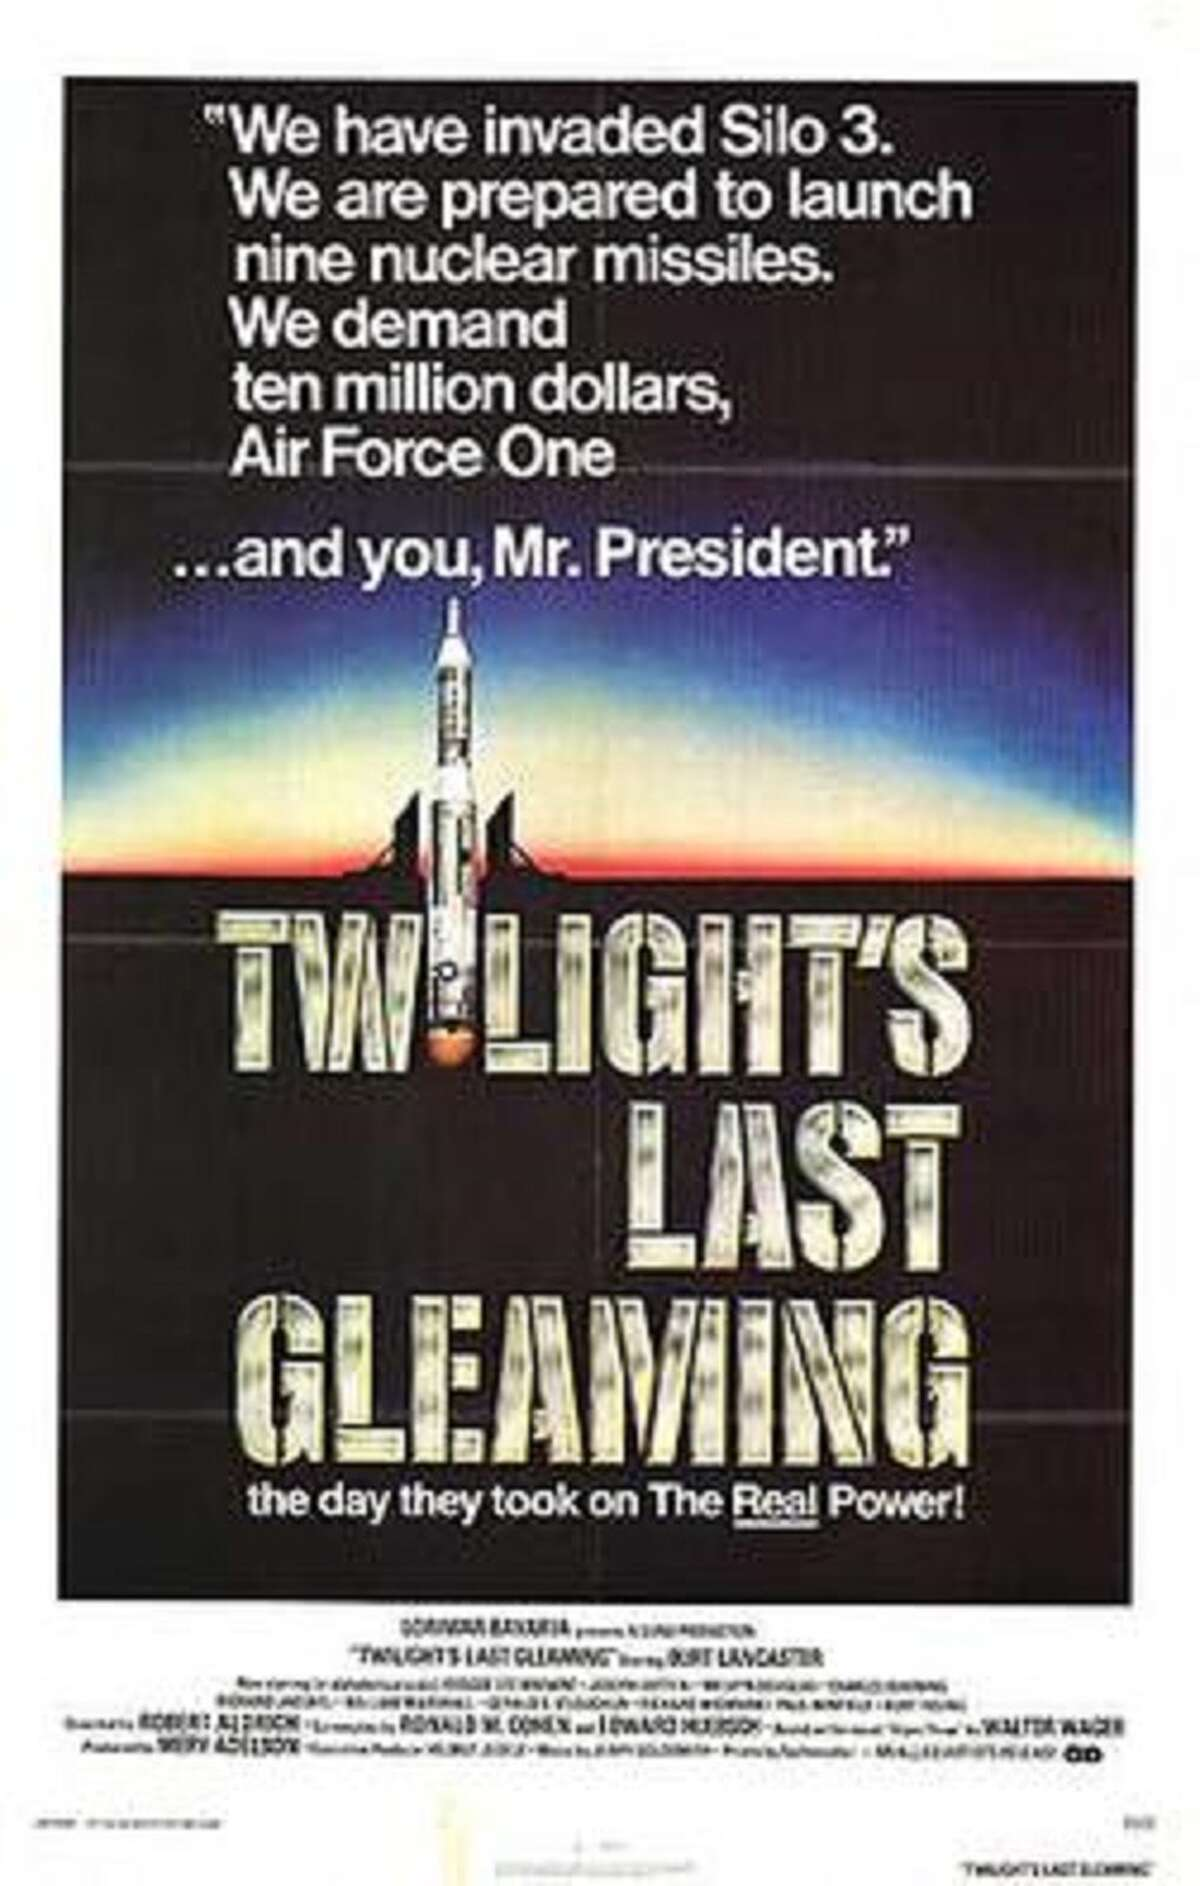 24. Twilight's Last Gleaming (1977) Charles Durning indeed did have political experience before becoming the governor of the Lone Star State in